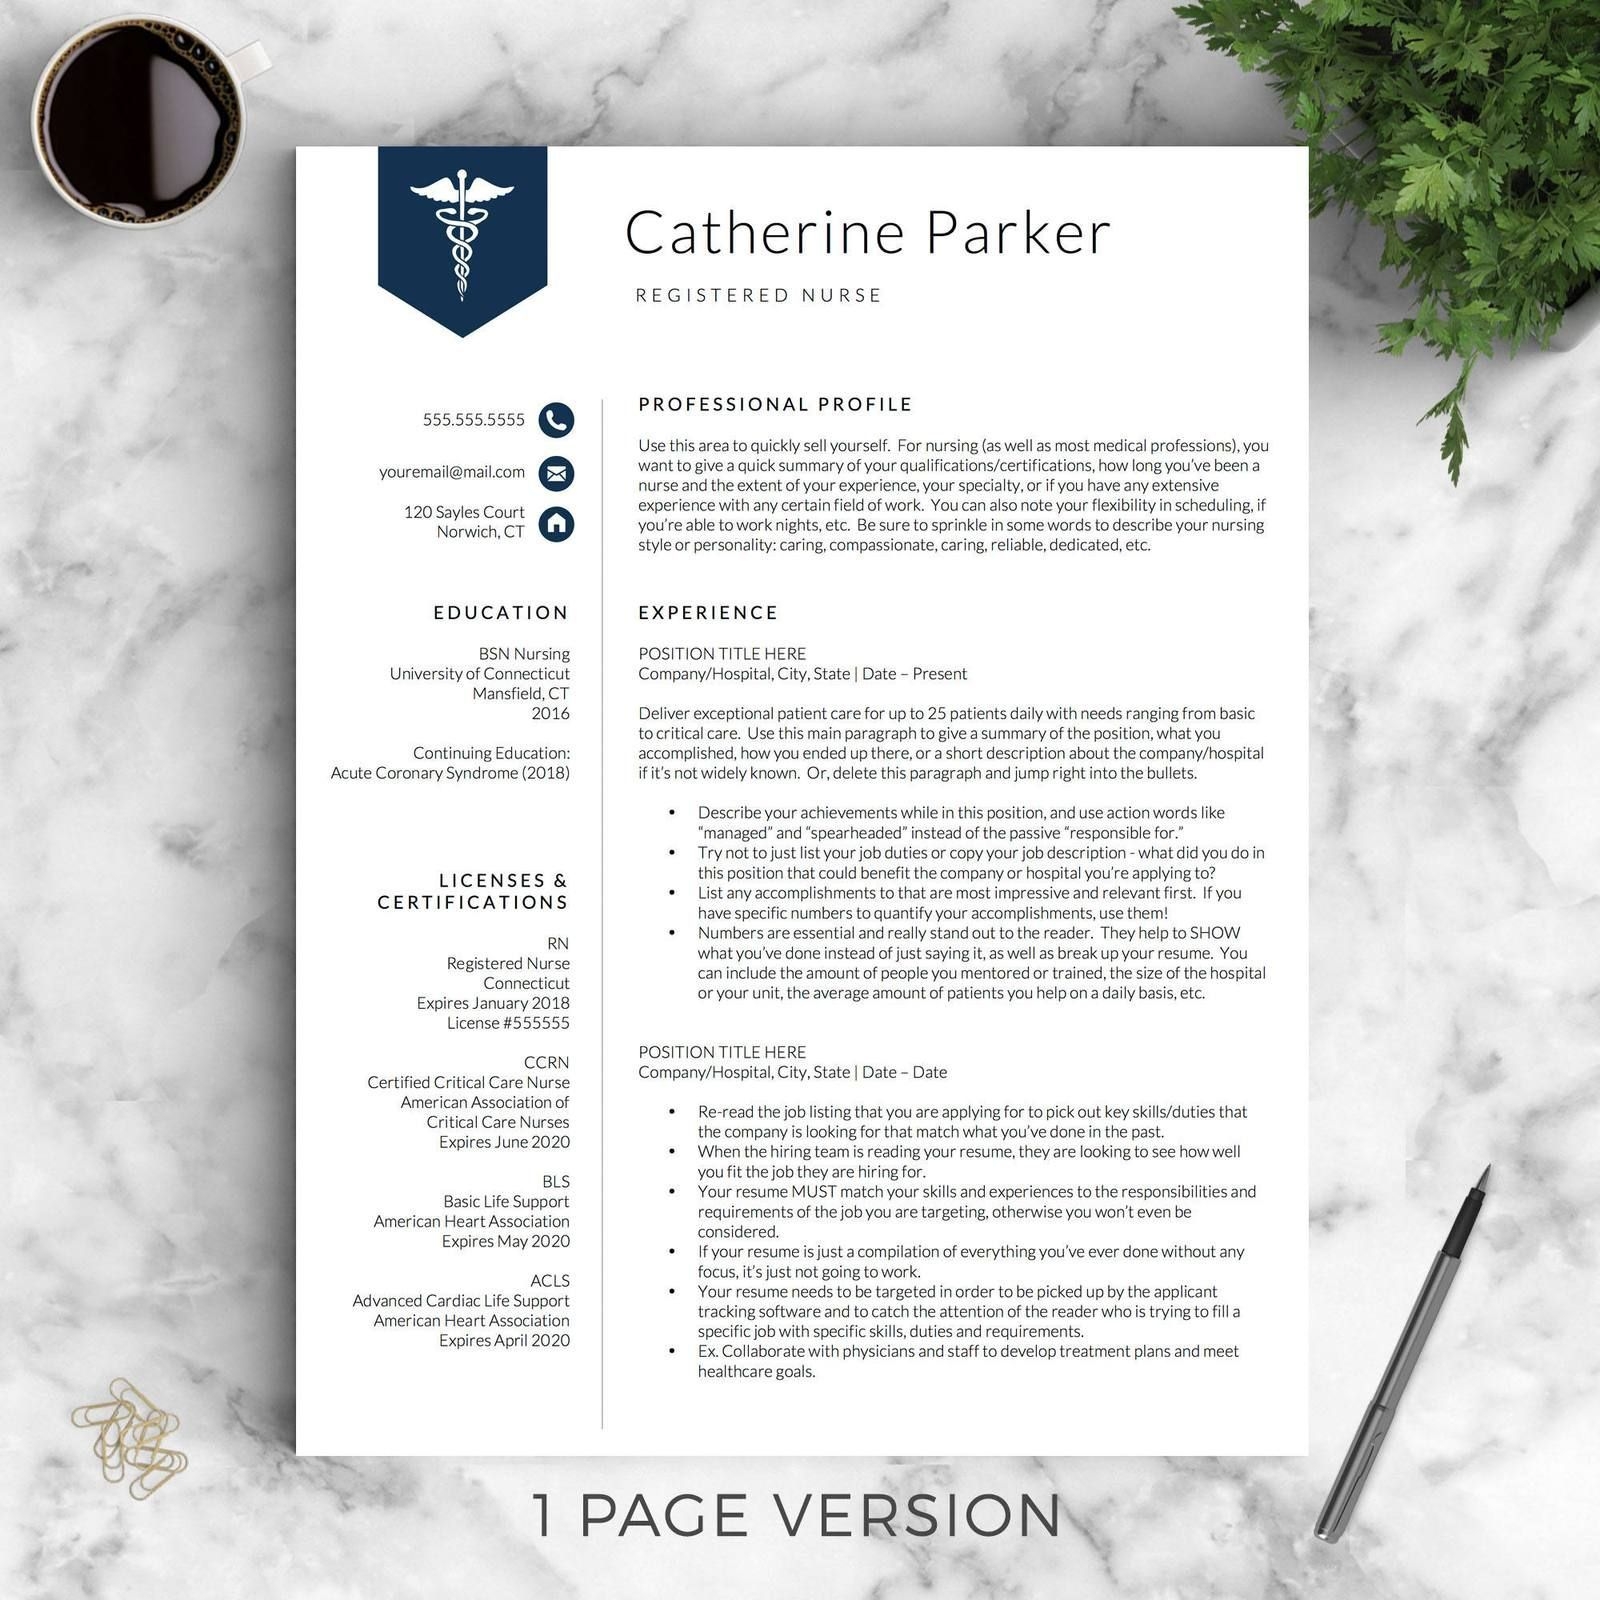 000 Simple Nurse Resume Template Free High Resolution  Graduate RnFull